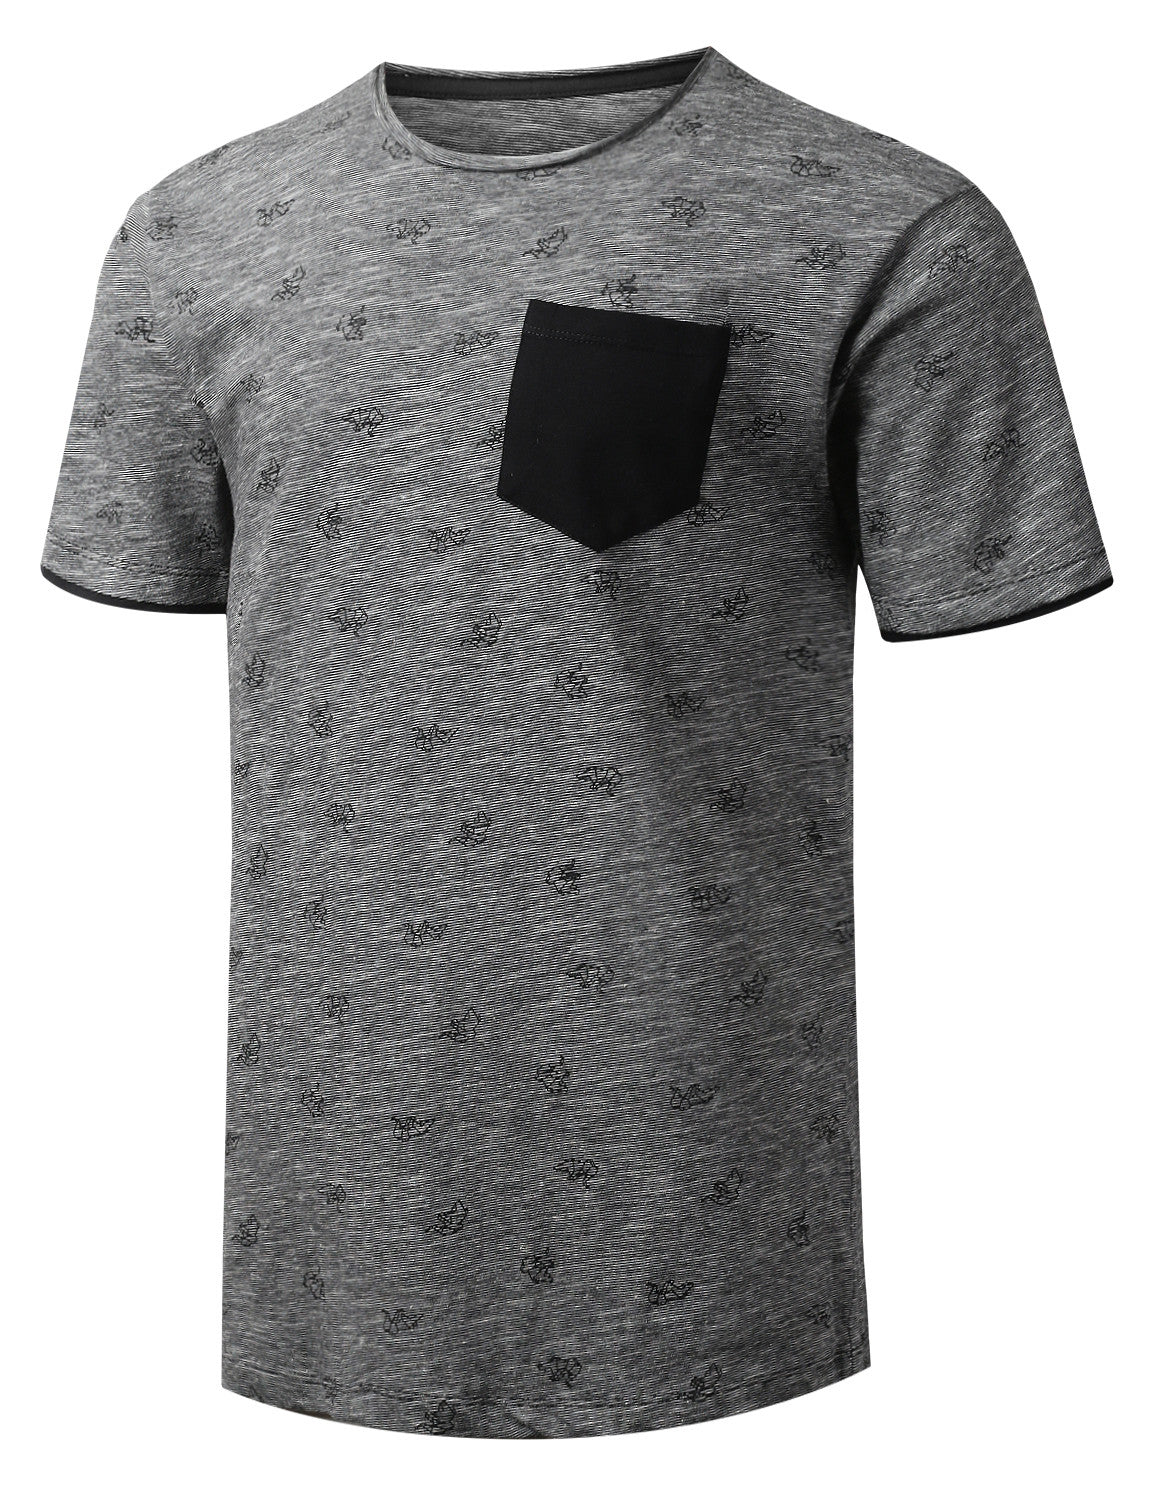 CHARCOALBLACK Raw Edge Collar Pocket T-shirt - URBANCREWS